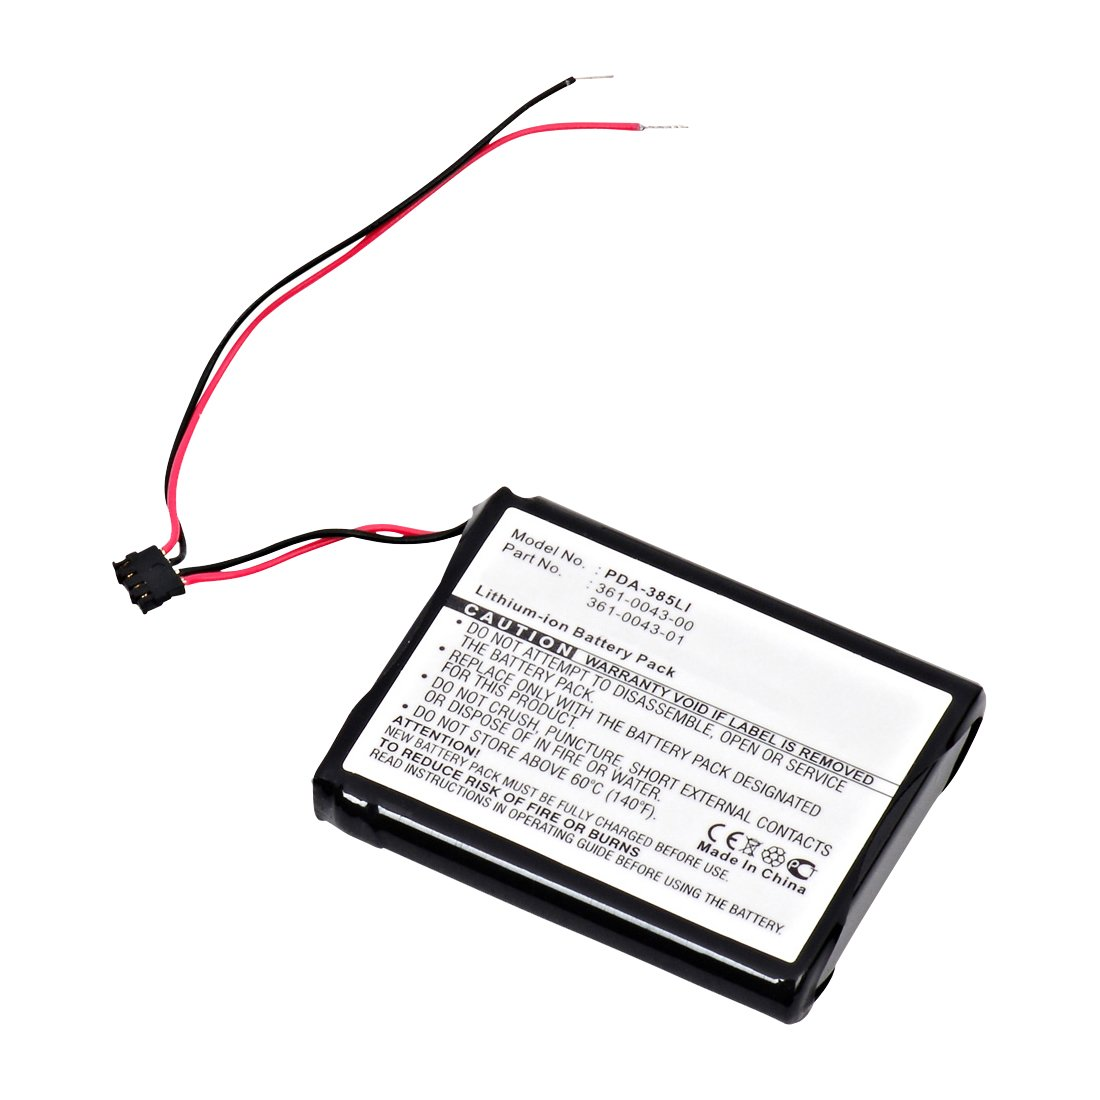 Replacement Garmin GPS 361-0043-00 Battery: BatteryMart.com